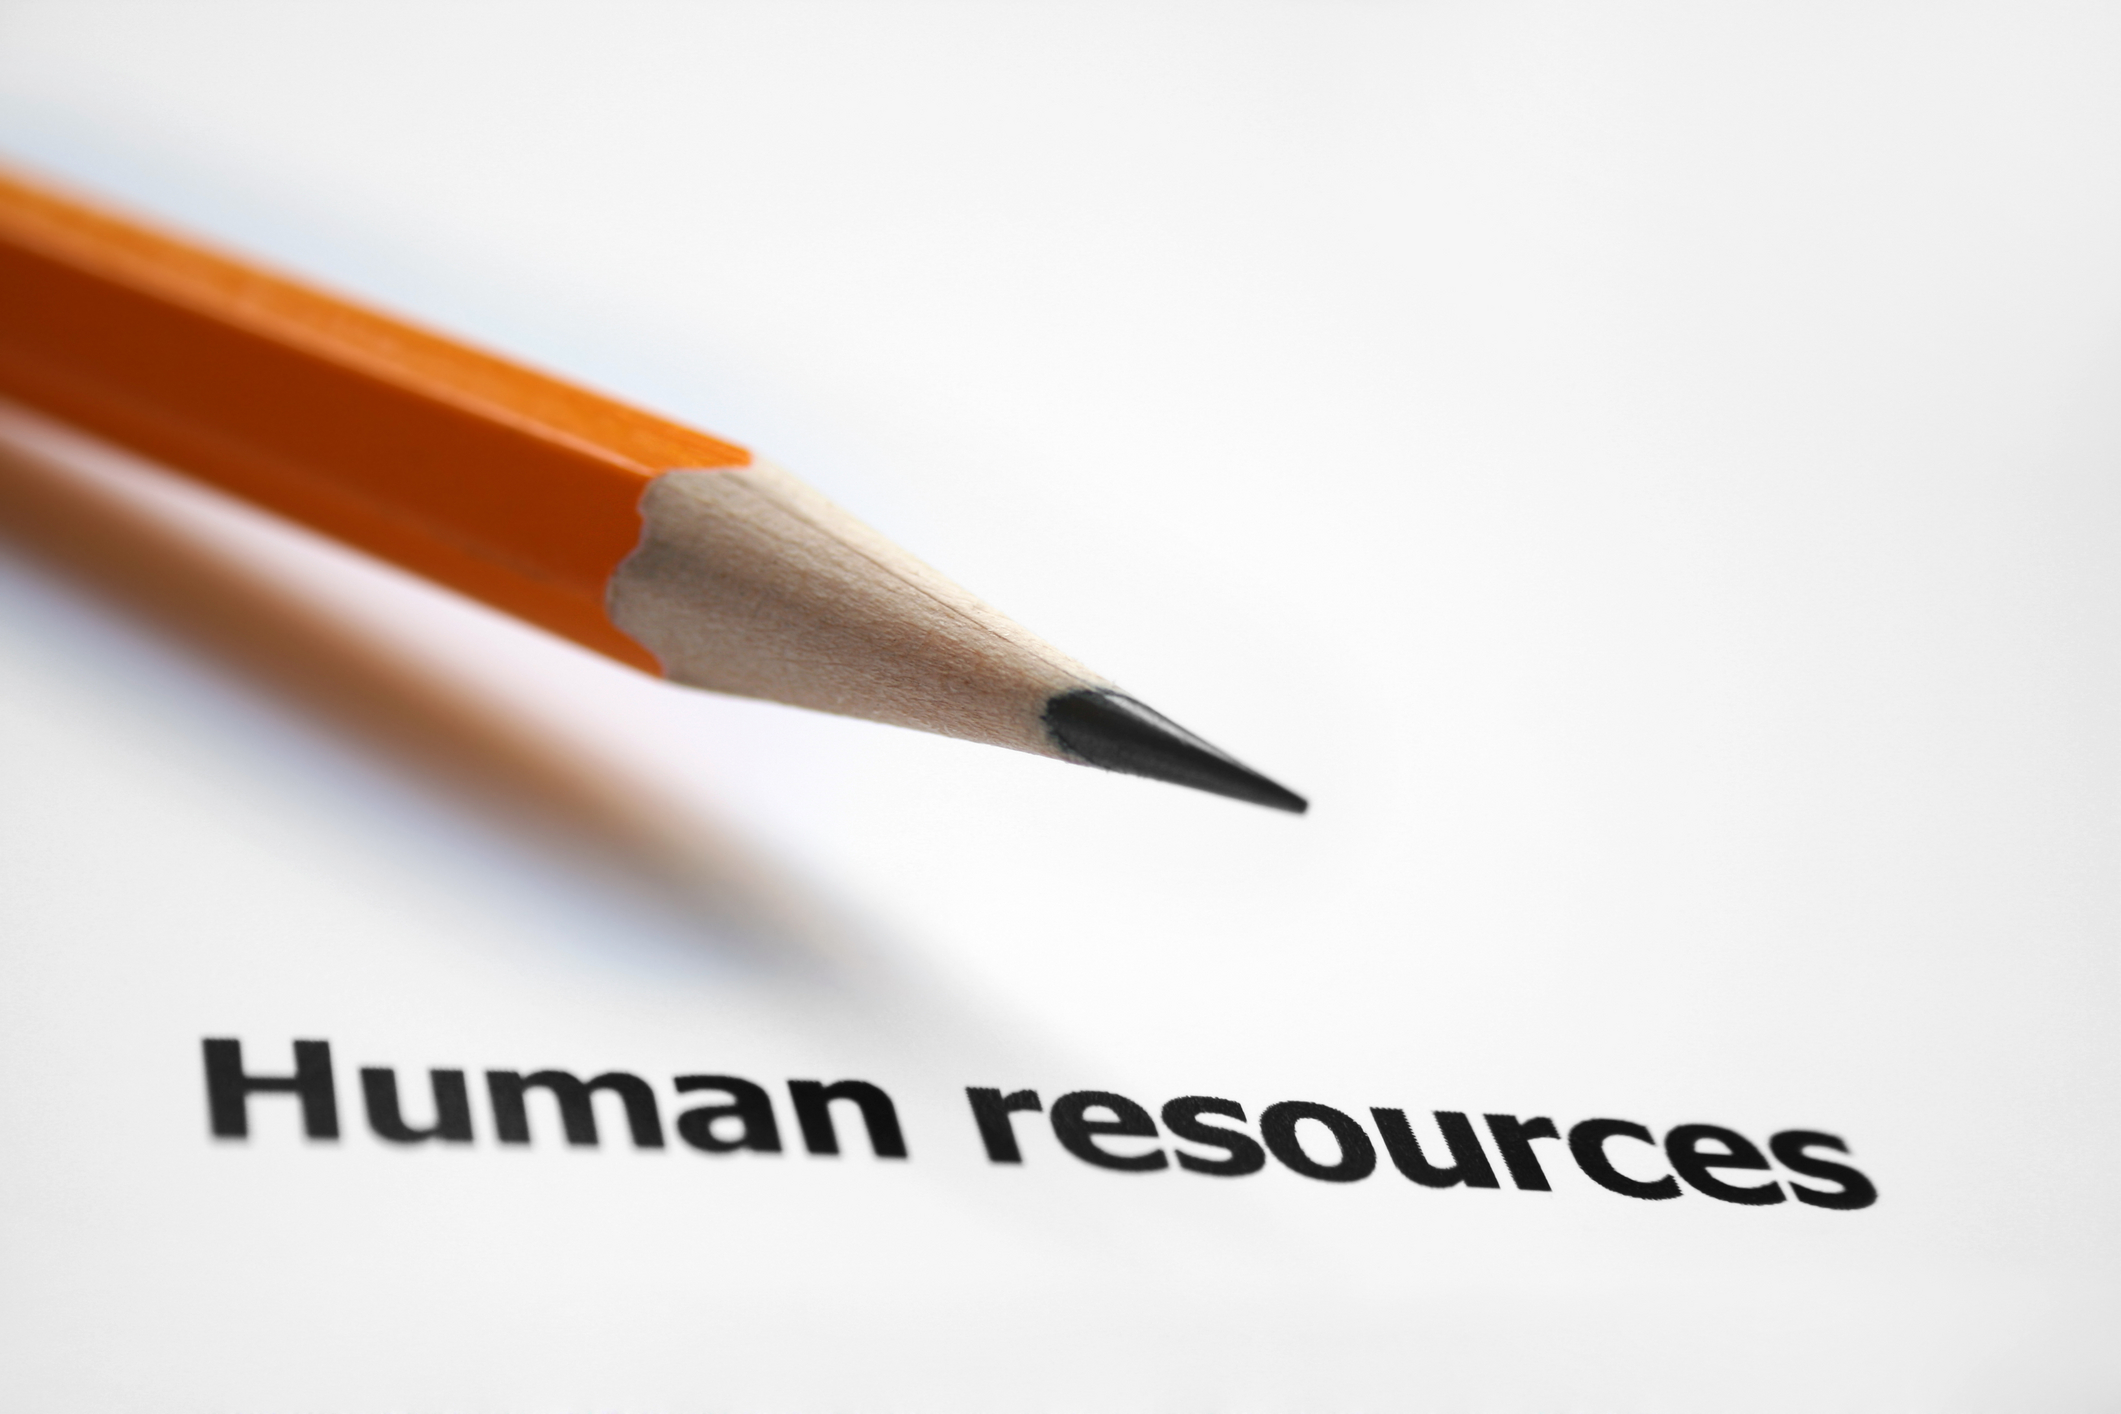 Human Resource Management: Human Resource Management Hiring